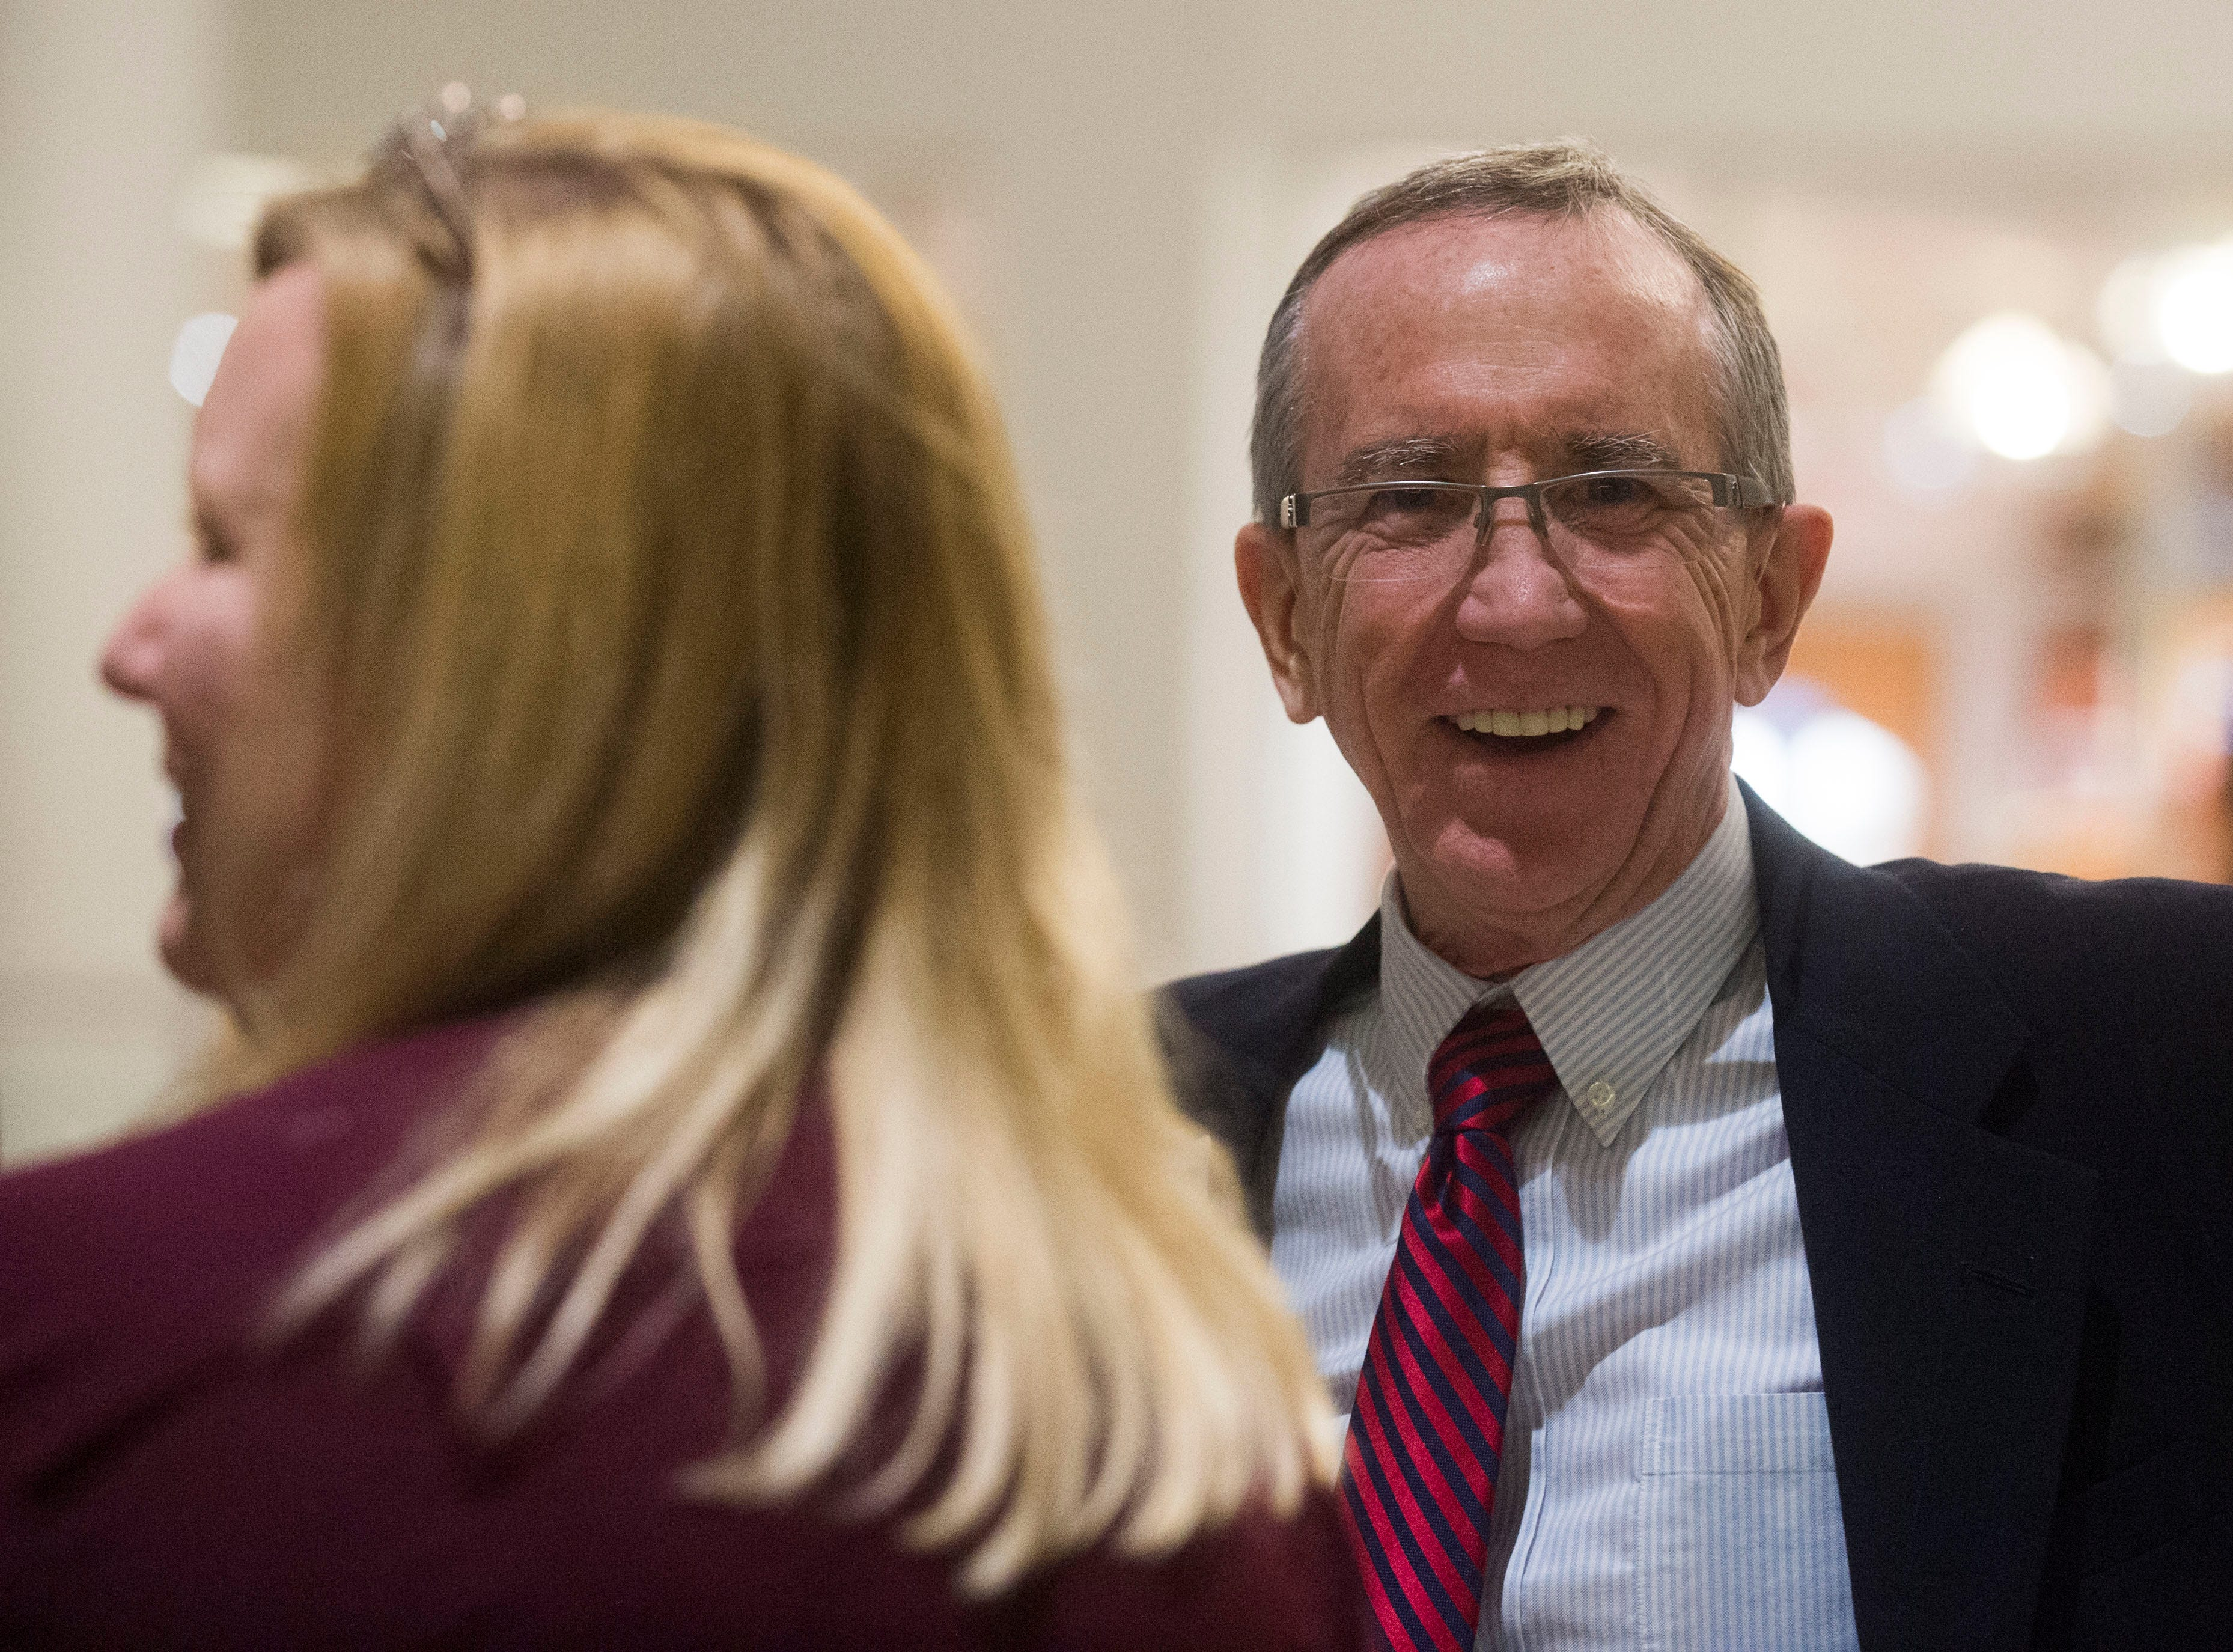 Executive editor of the Knoxville News Sentinel, Jack McElroy, smiles at Knox.biz's 20 under 20 event at the Women's Basketball Hall of Fame Thursday, Nov. 8, 2018.